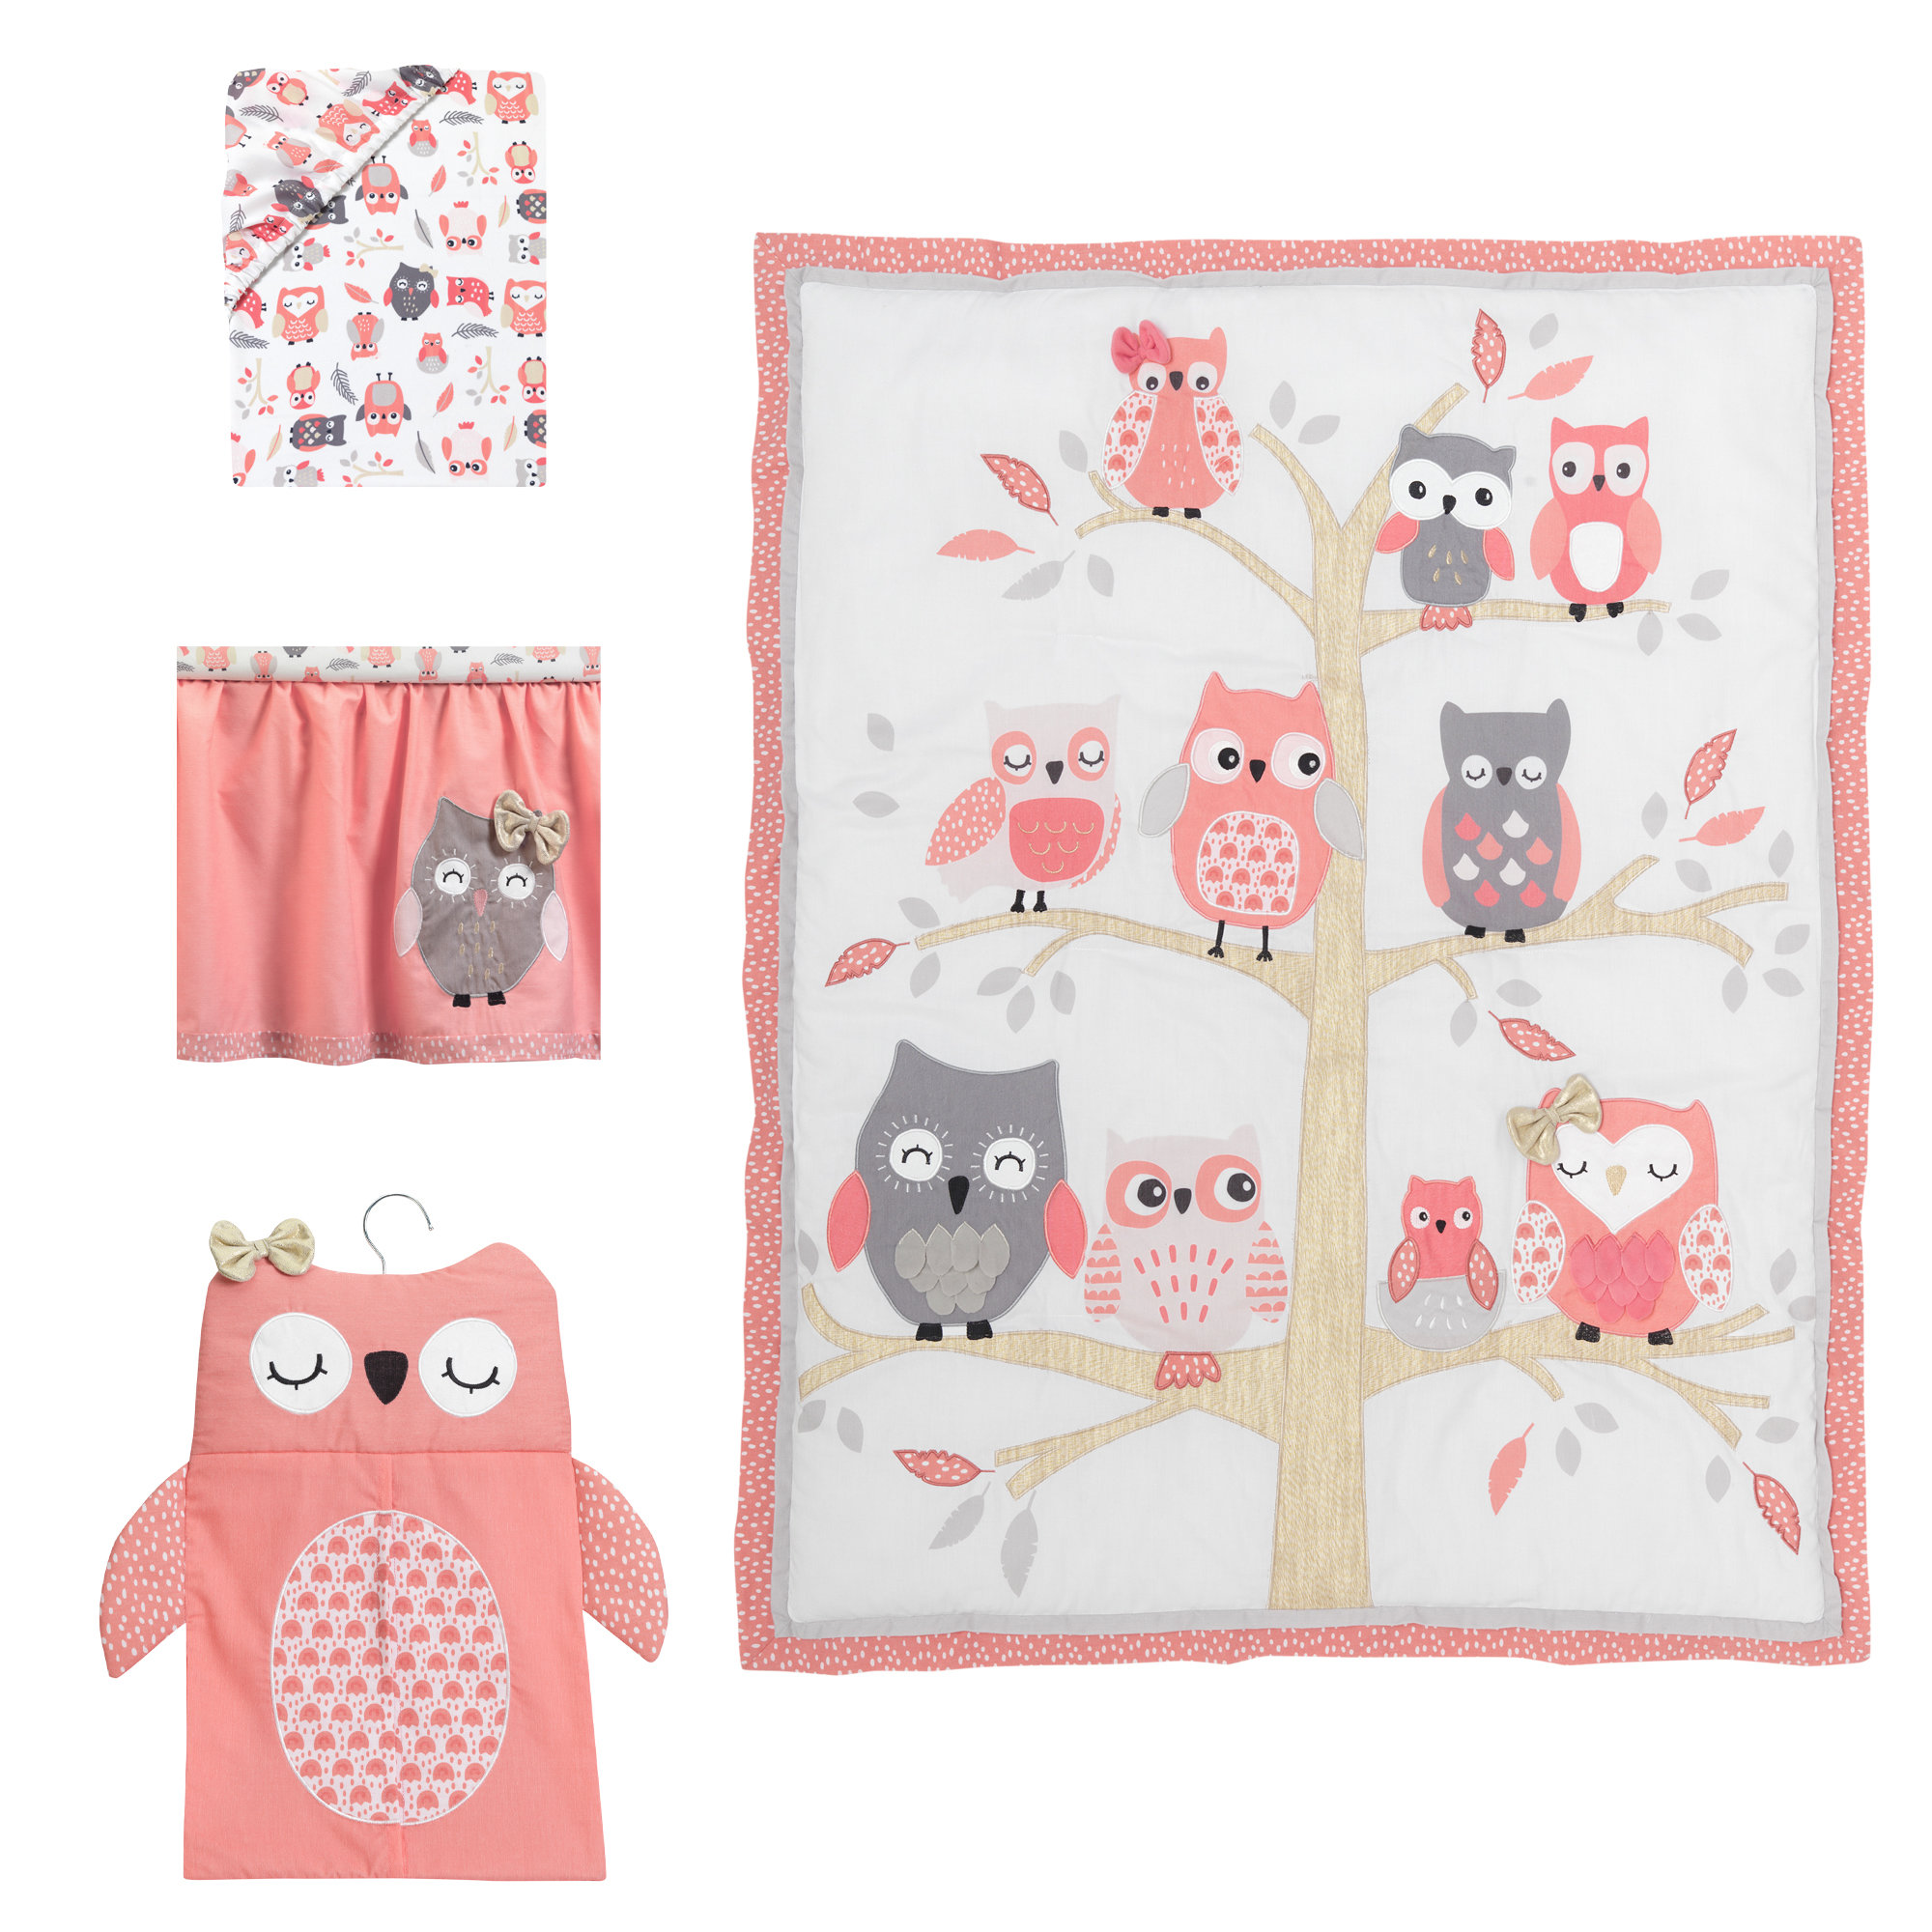 furniture give your nursery tic accent with cute owl crib dinosaur bedding jcpenney baby sets for boys elephant purple woodland animal tables white cotton tablecloths home goods